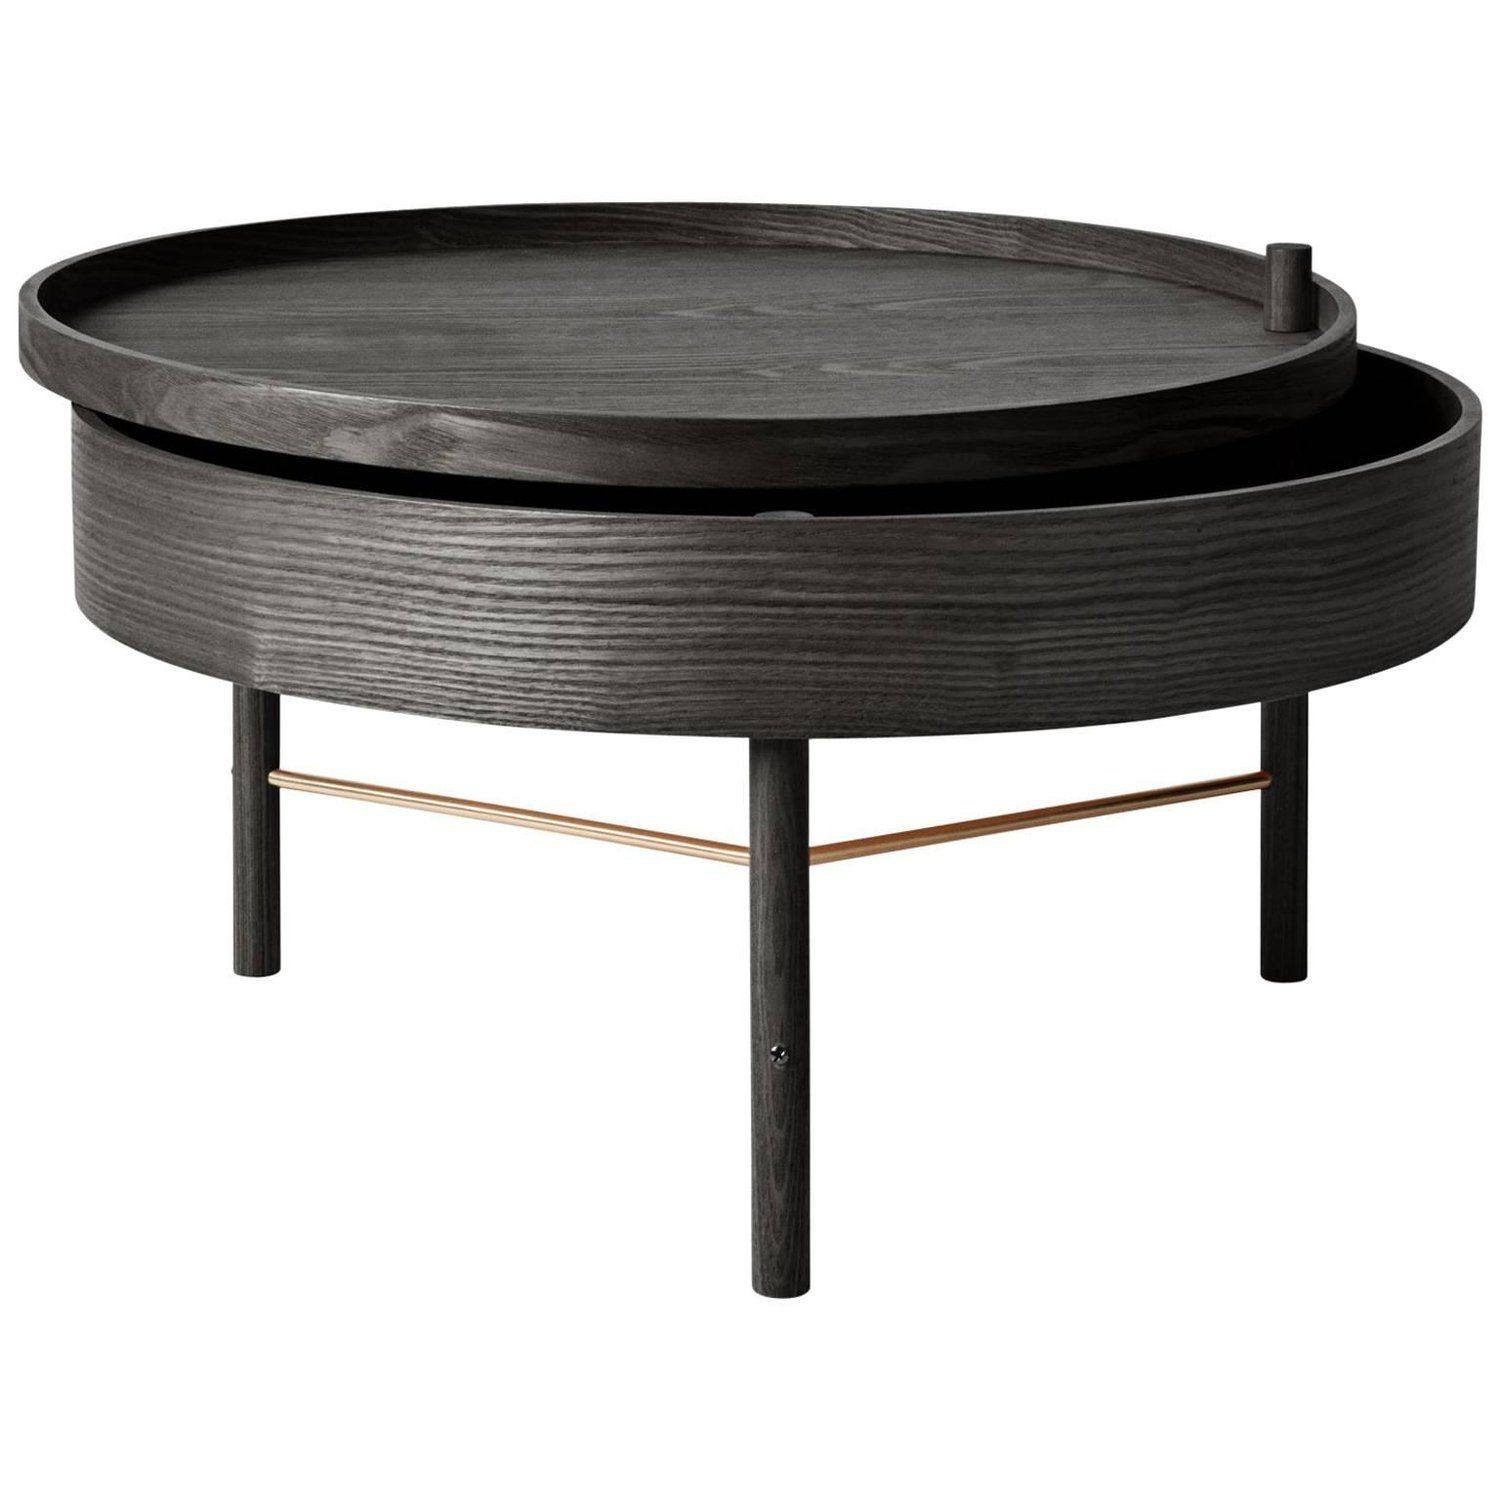 Turning Table By Theresa Arns Coffee Table With Storage In Dark Oak And Brass Menu Furniture Affordable Living Room Furniture Coffee Table With Storage